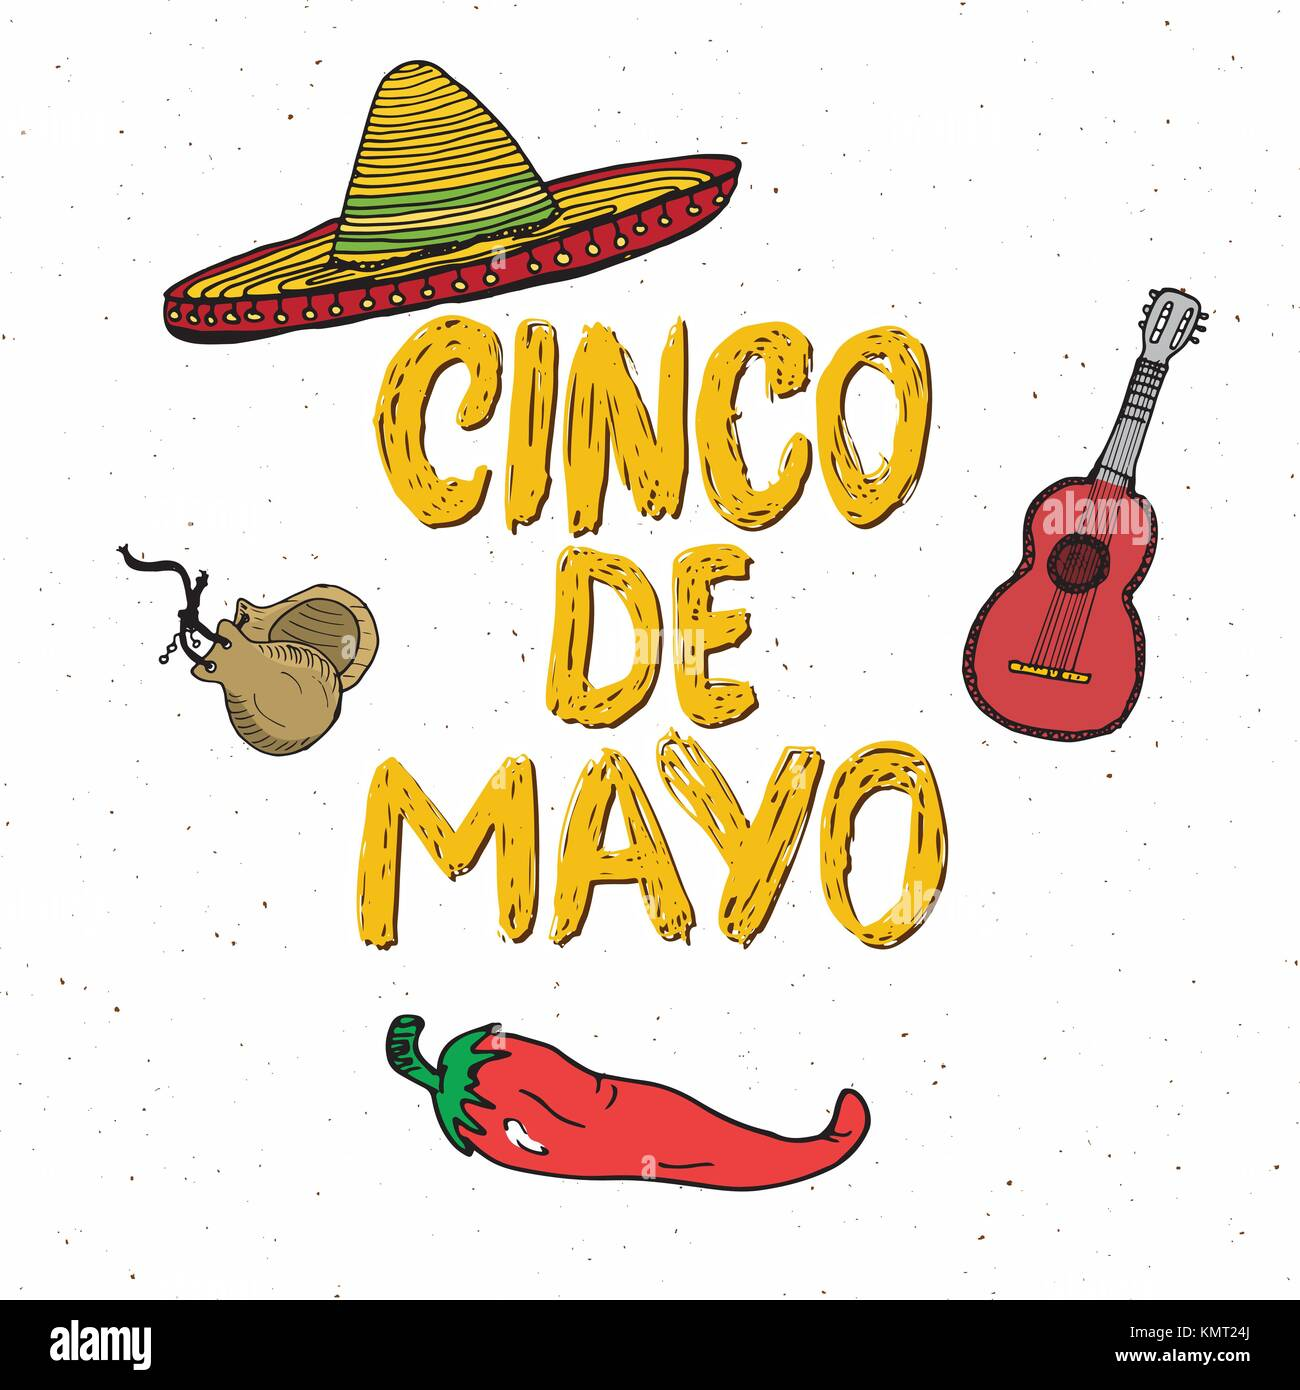 Happy cinco de mayo greeting card hand lettering mexican holiday happy cinco de mayo greeting card hand lettering mexican holiday vector illustration isolated on white background m4hsunfo